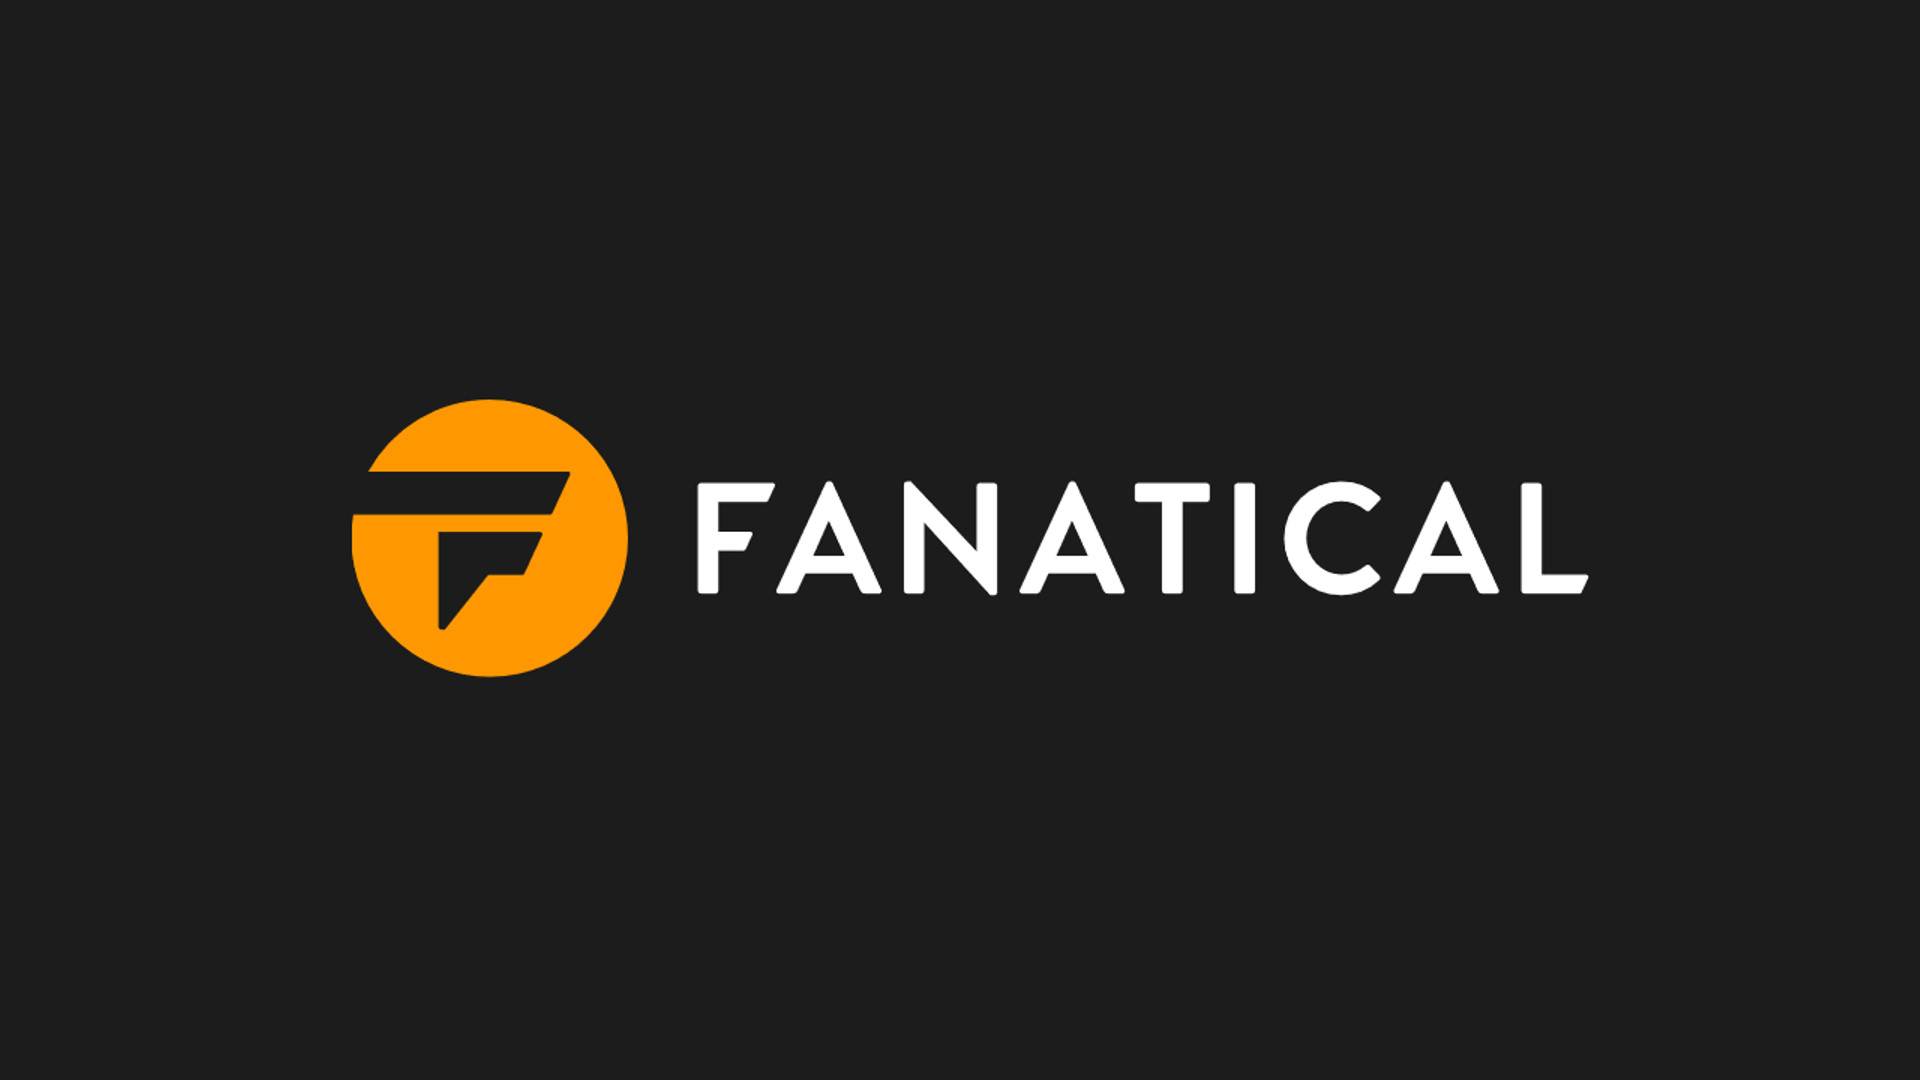 Fanatical Promo Codes: Up to 50% off